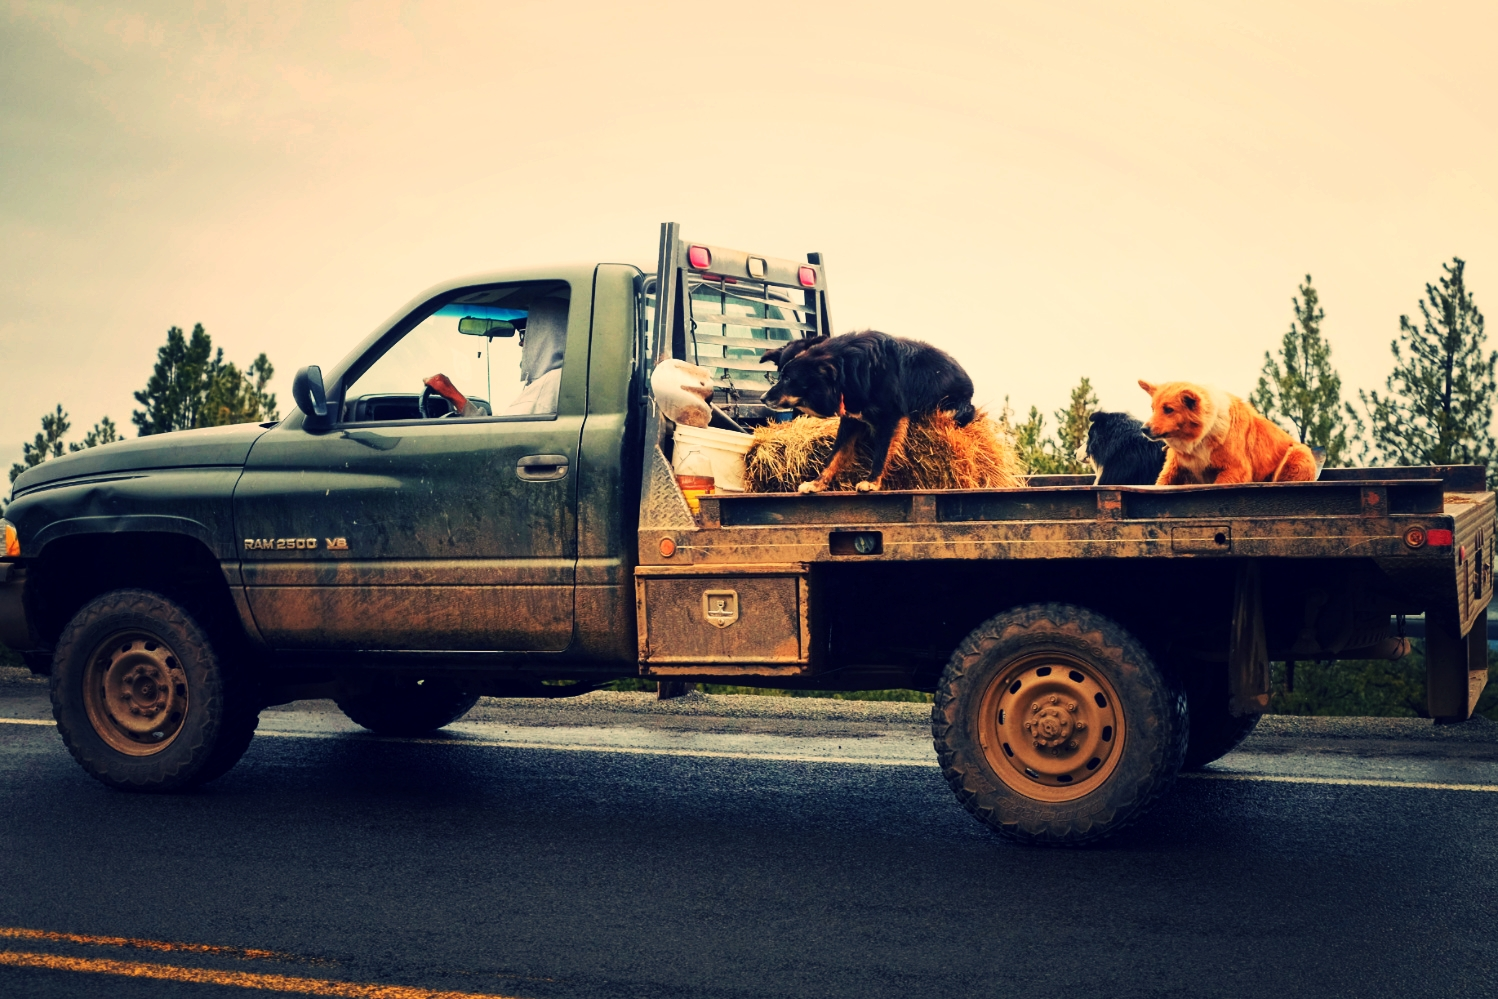 Standard protocol was seeing a truck full of barking dogs.